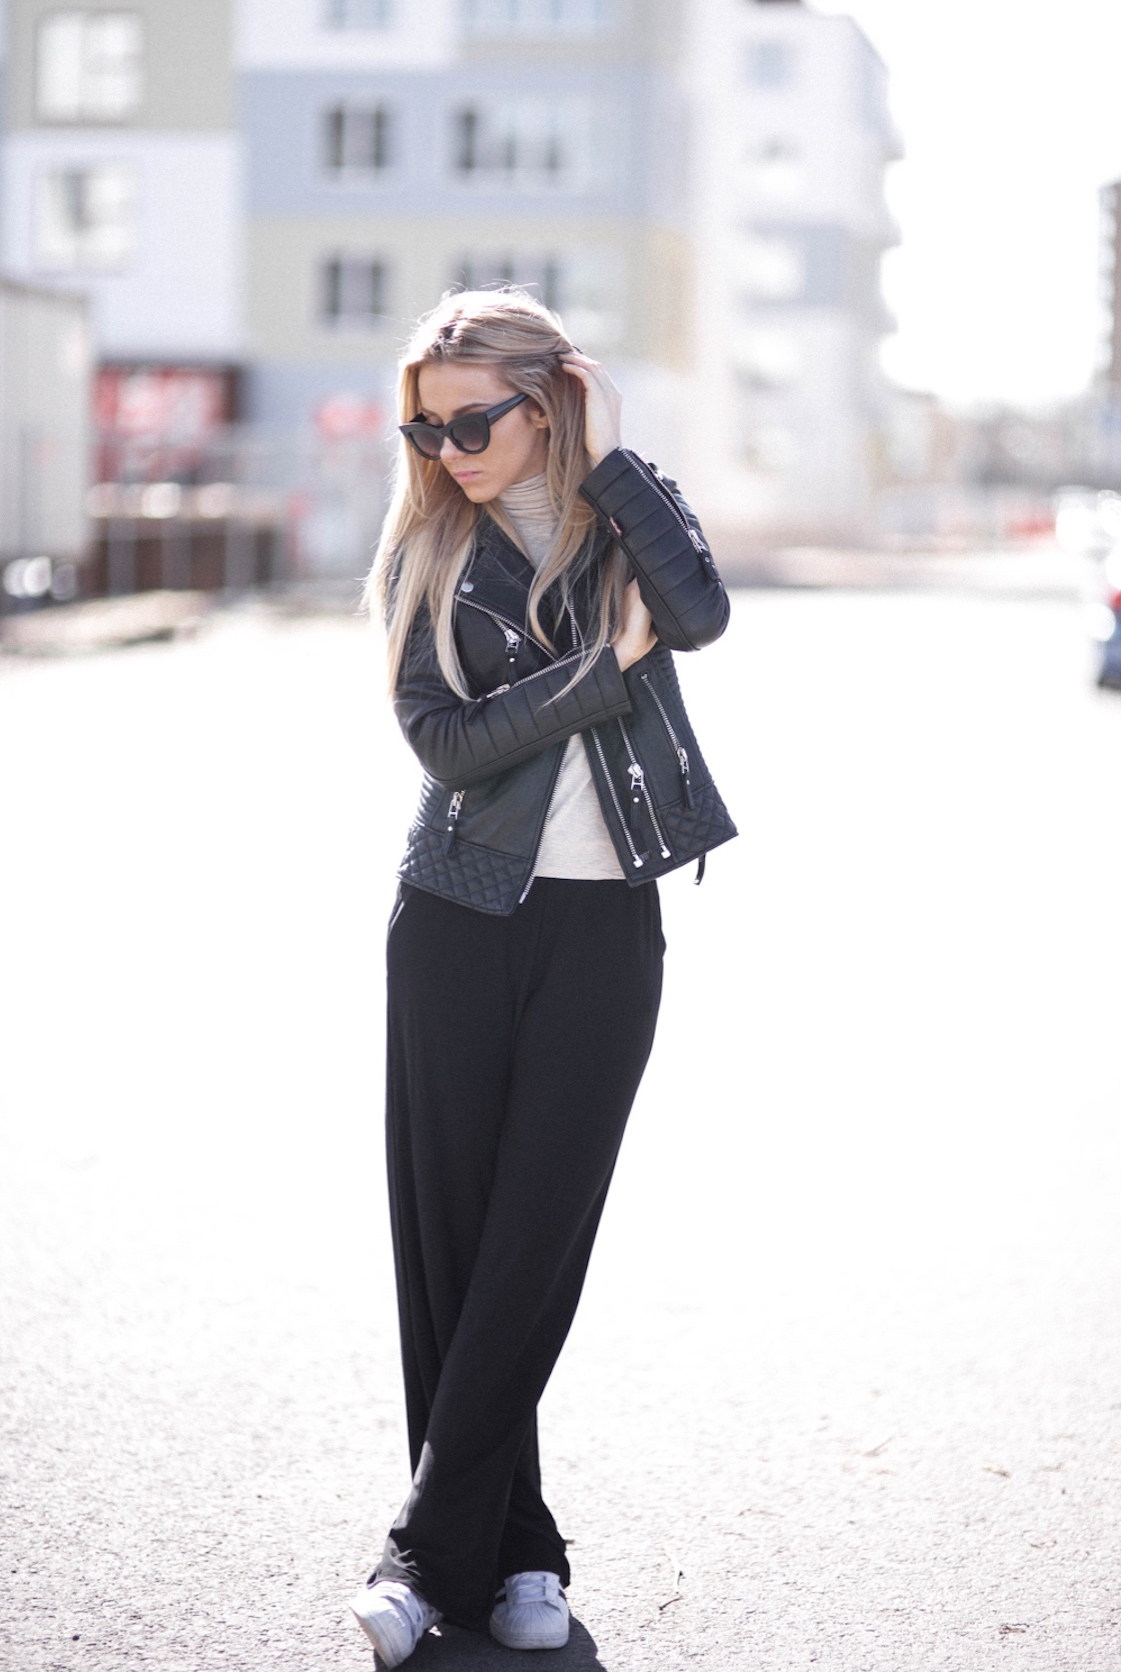 Street Style: Sendi Skopljak is wearing a leather jacket from Boda Skins and the wide leg trousers are from Lindex